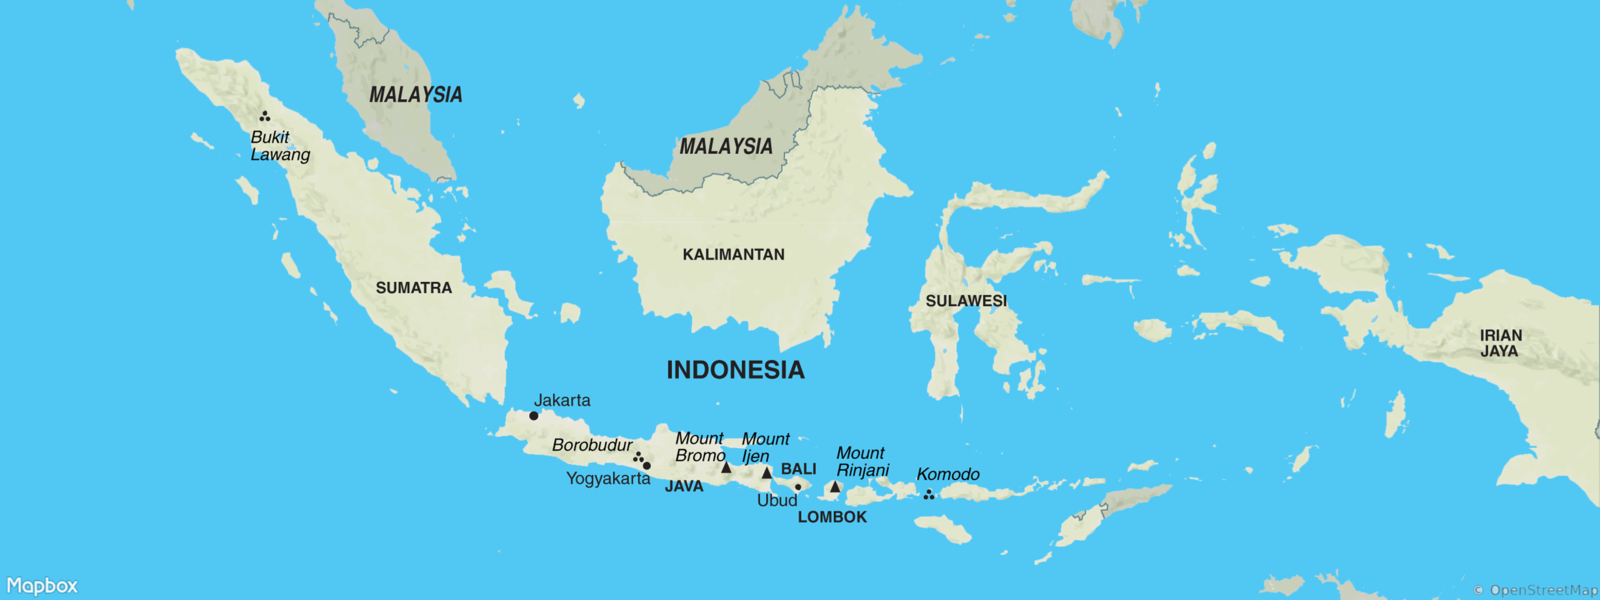 Indonesia map